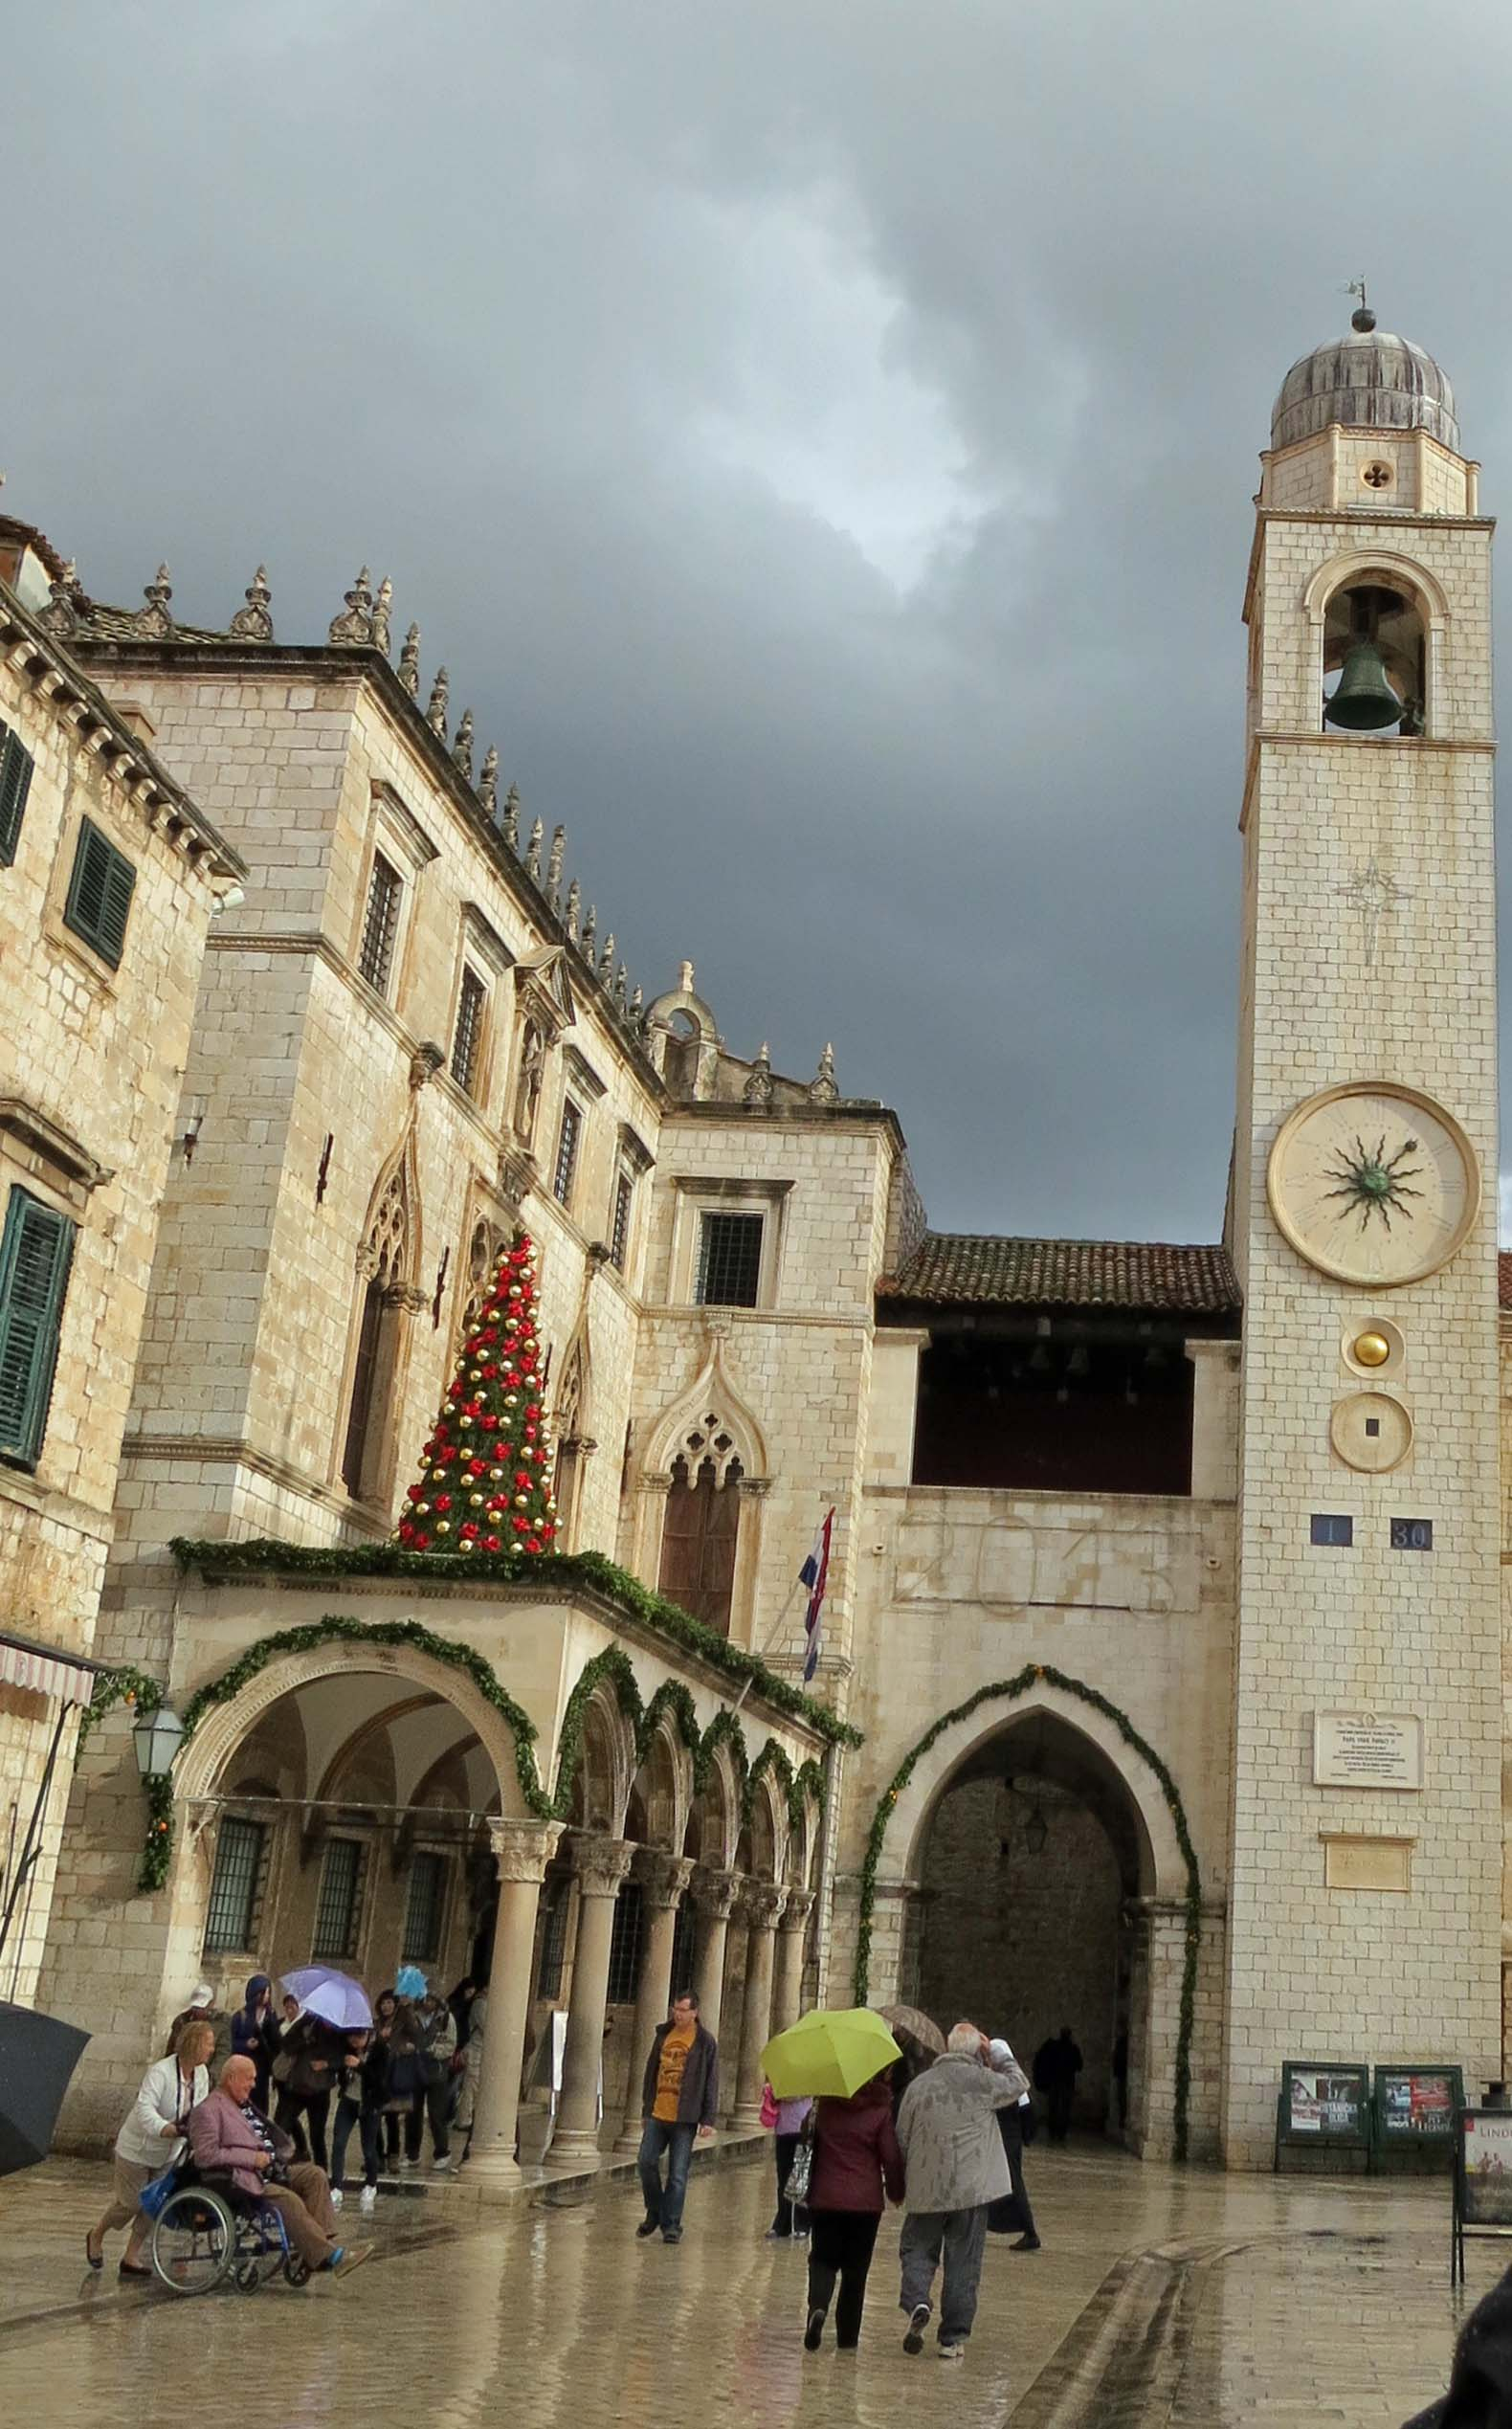 Another photo of Sponza Palace, the Christmas Tree and Dubrovnik's clock tower.